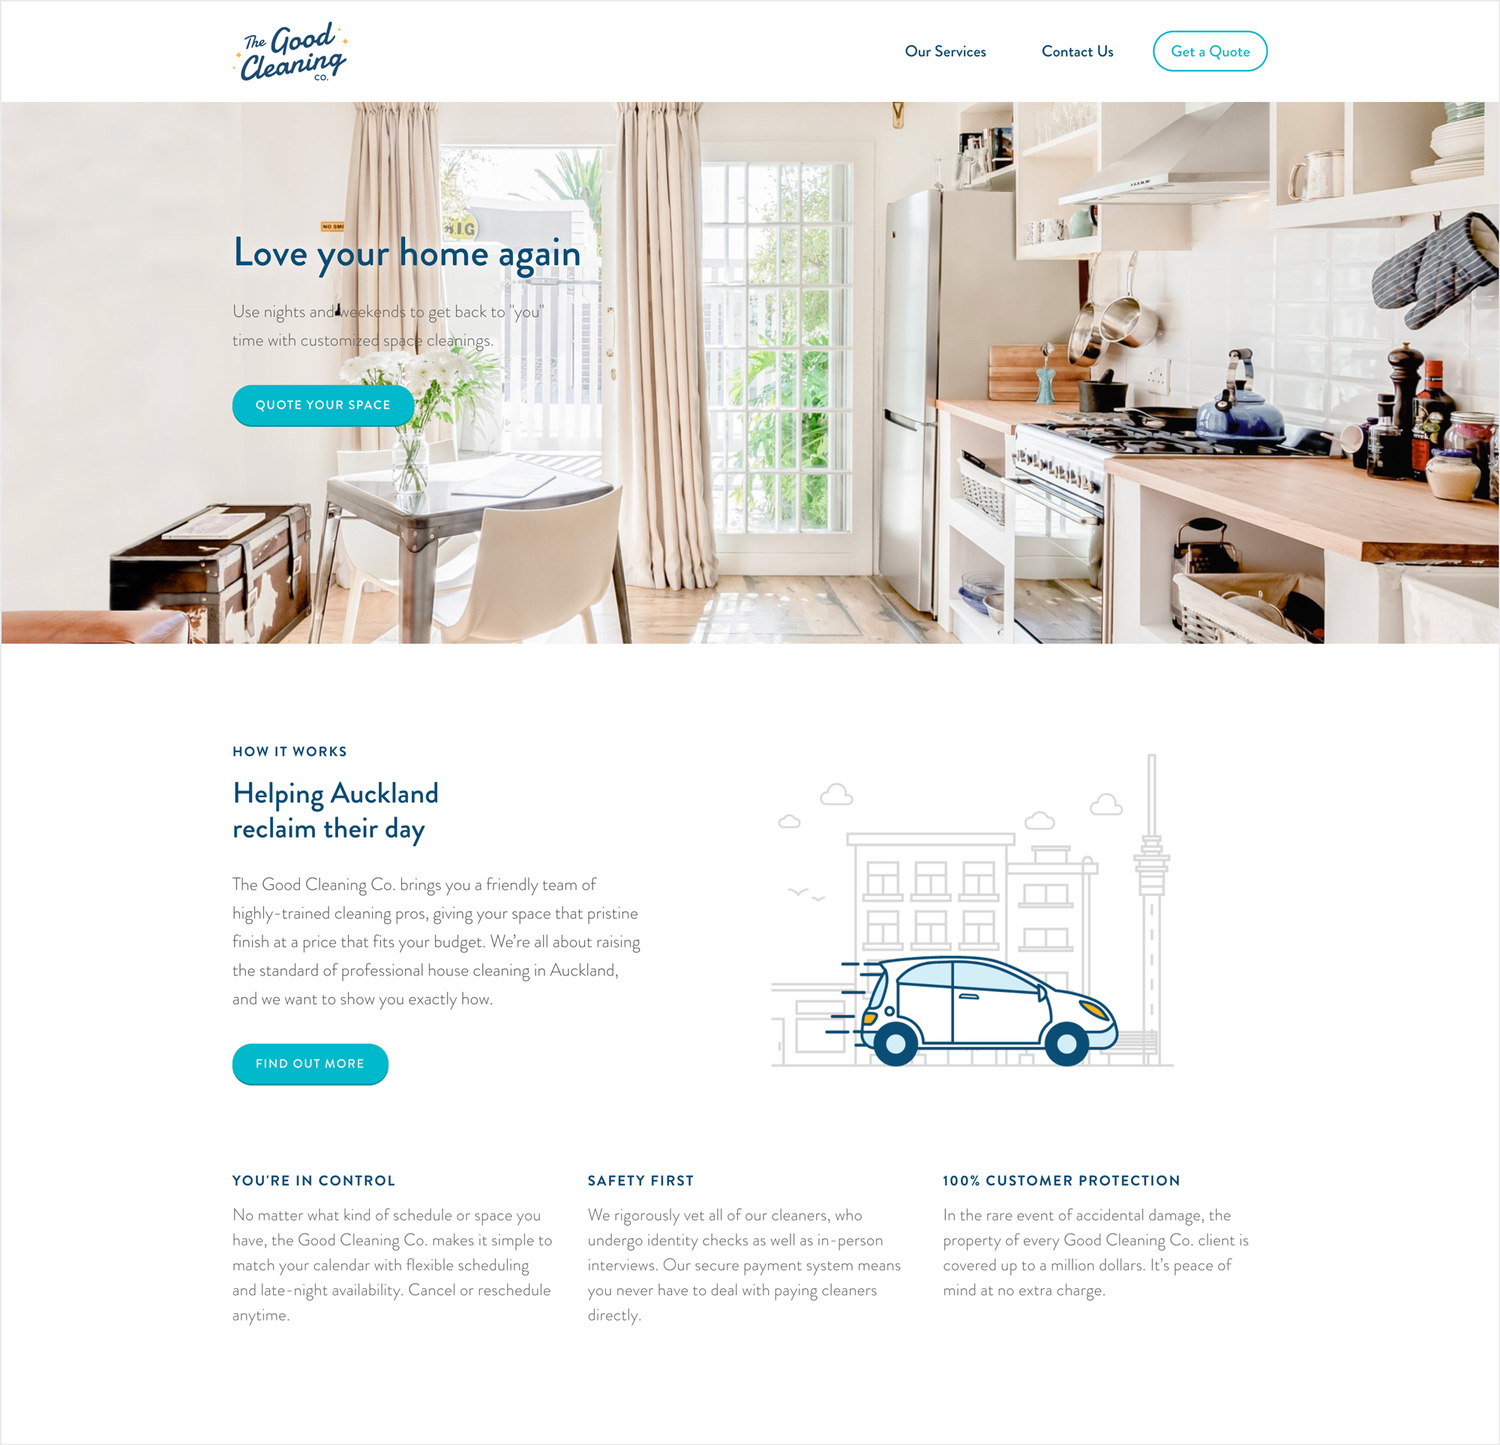 The Good Cleaning Company Brand & Website Design 1